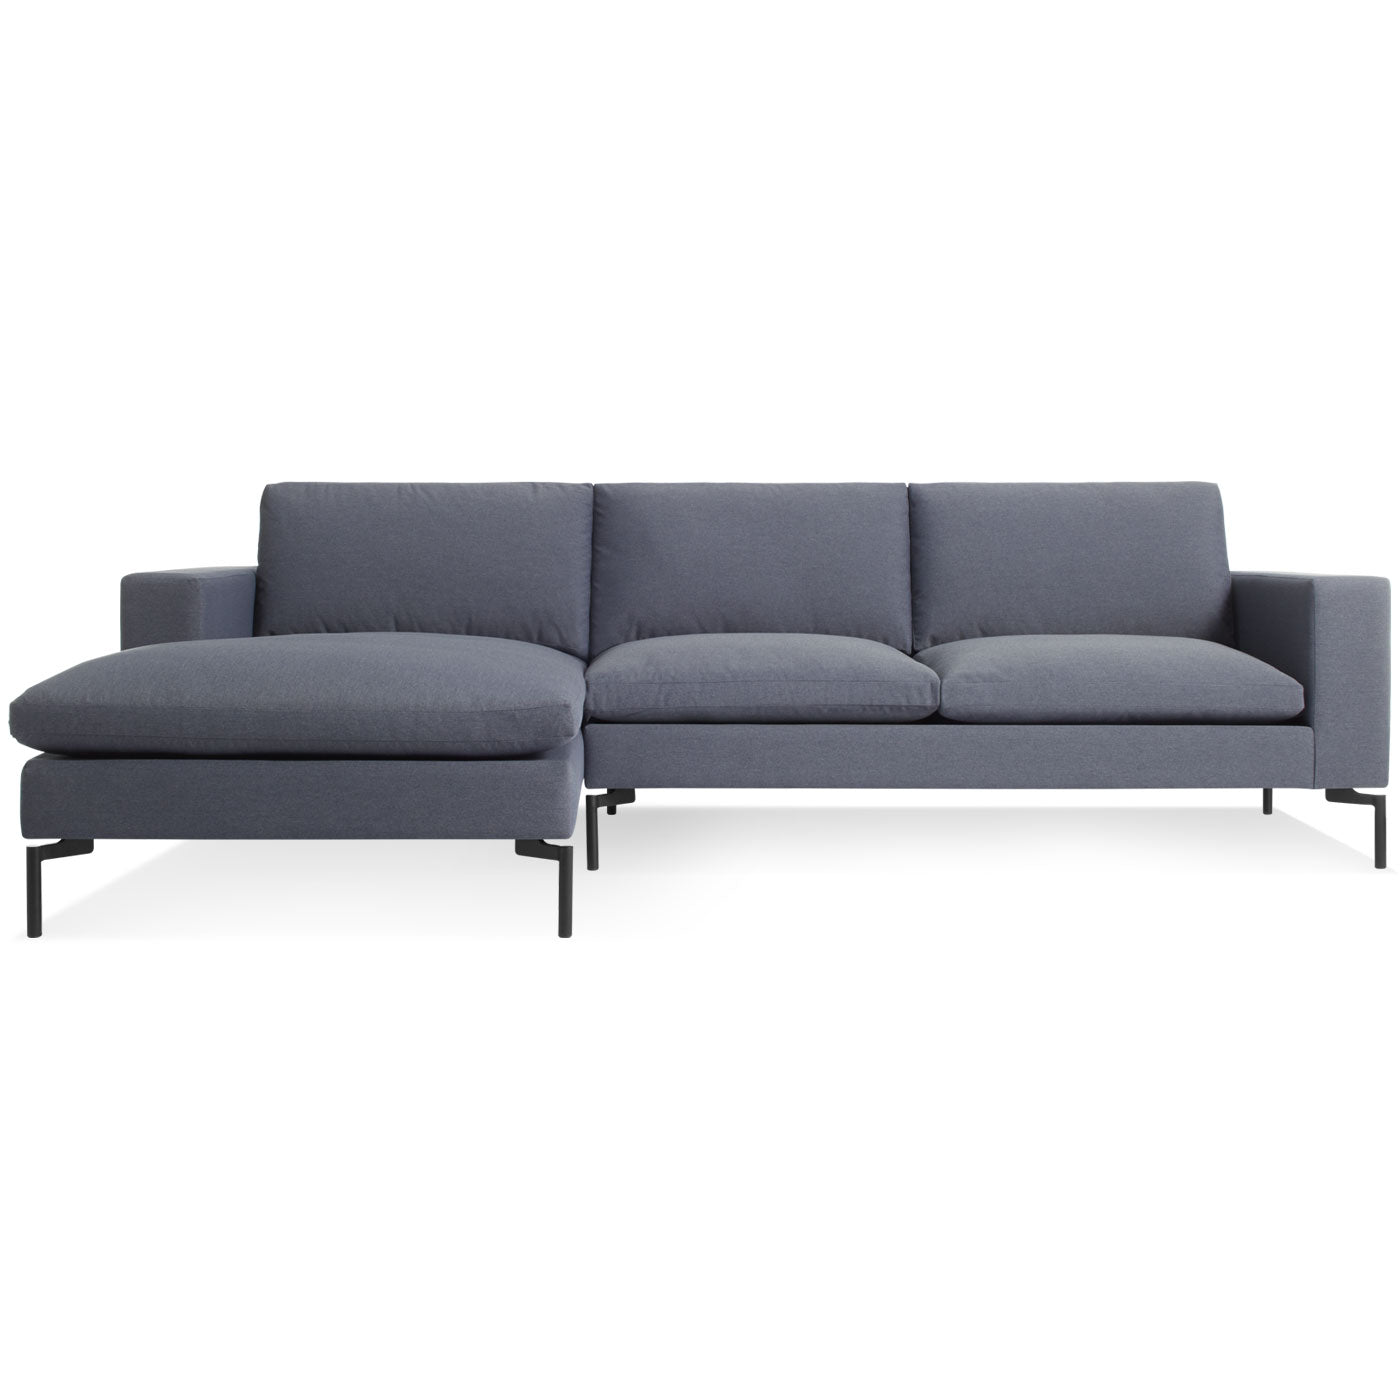 Delicieux Blu Dot New Standard Sofa W/ Left Arm Chaise